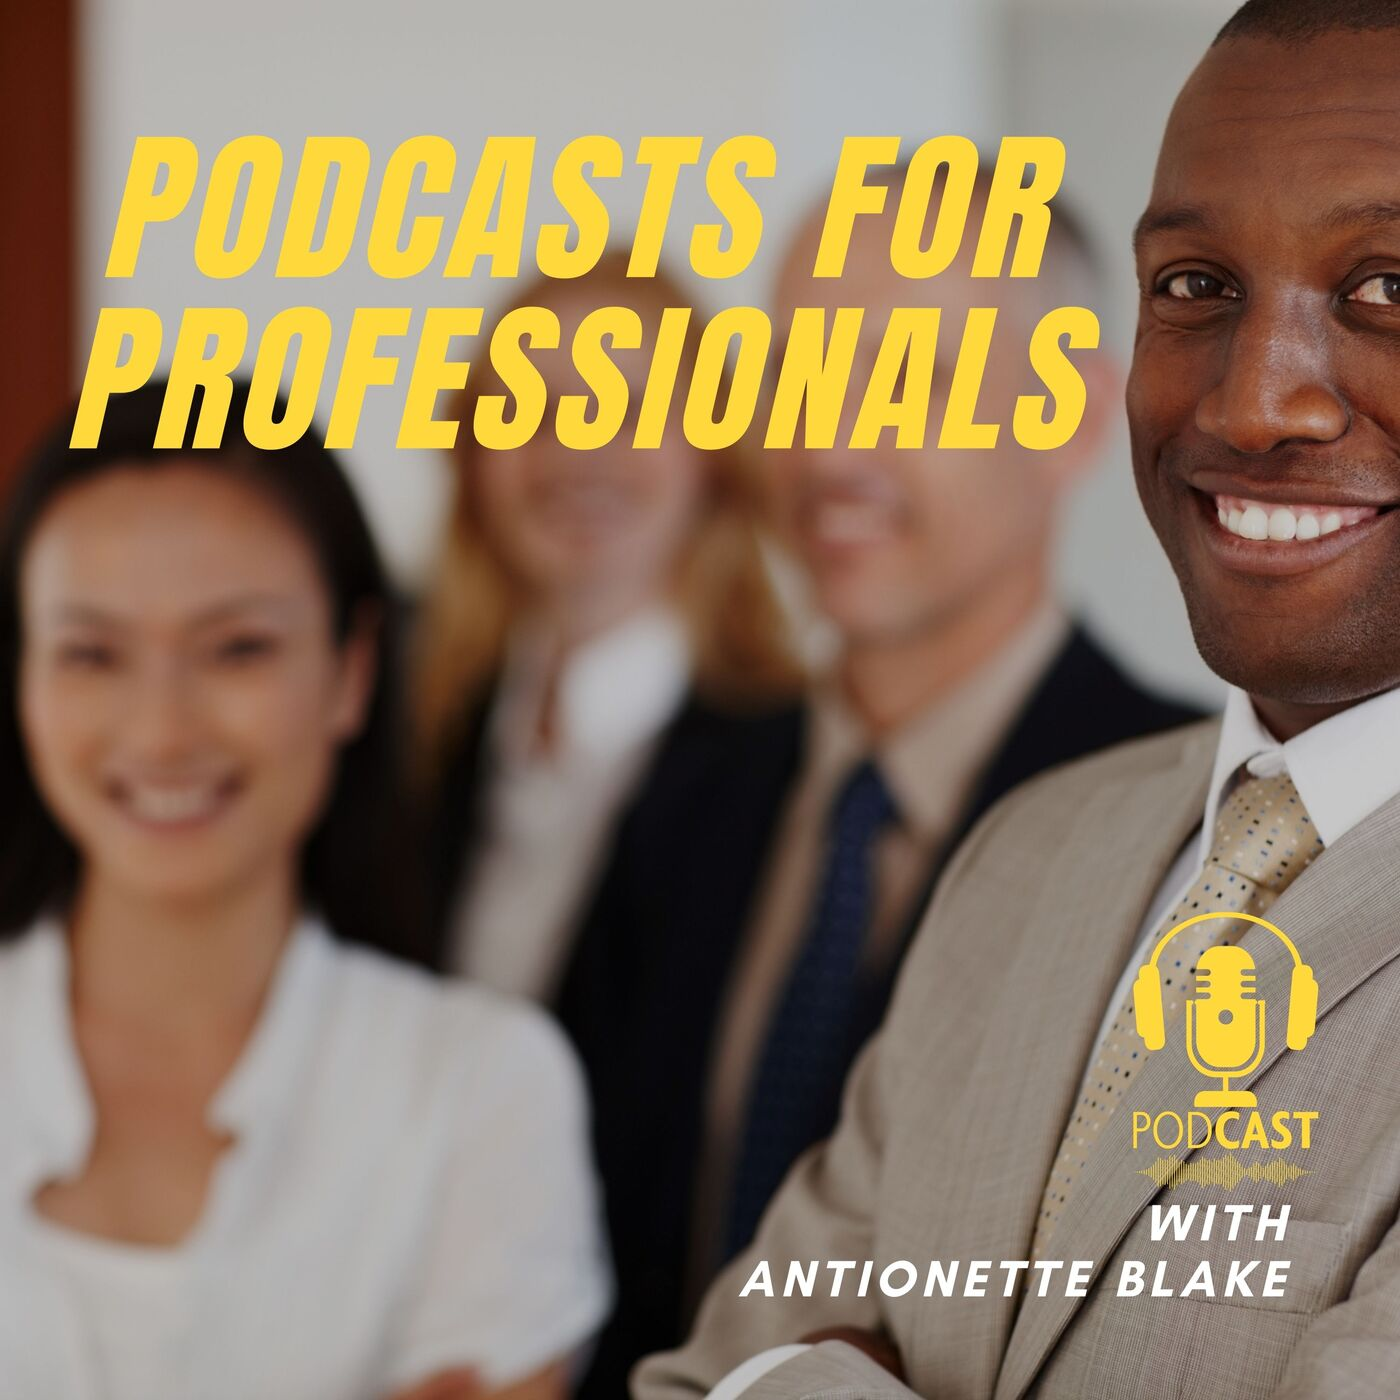 Podcasts for Professionals